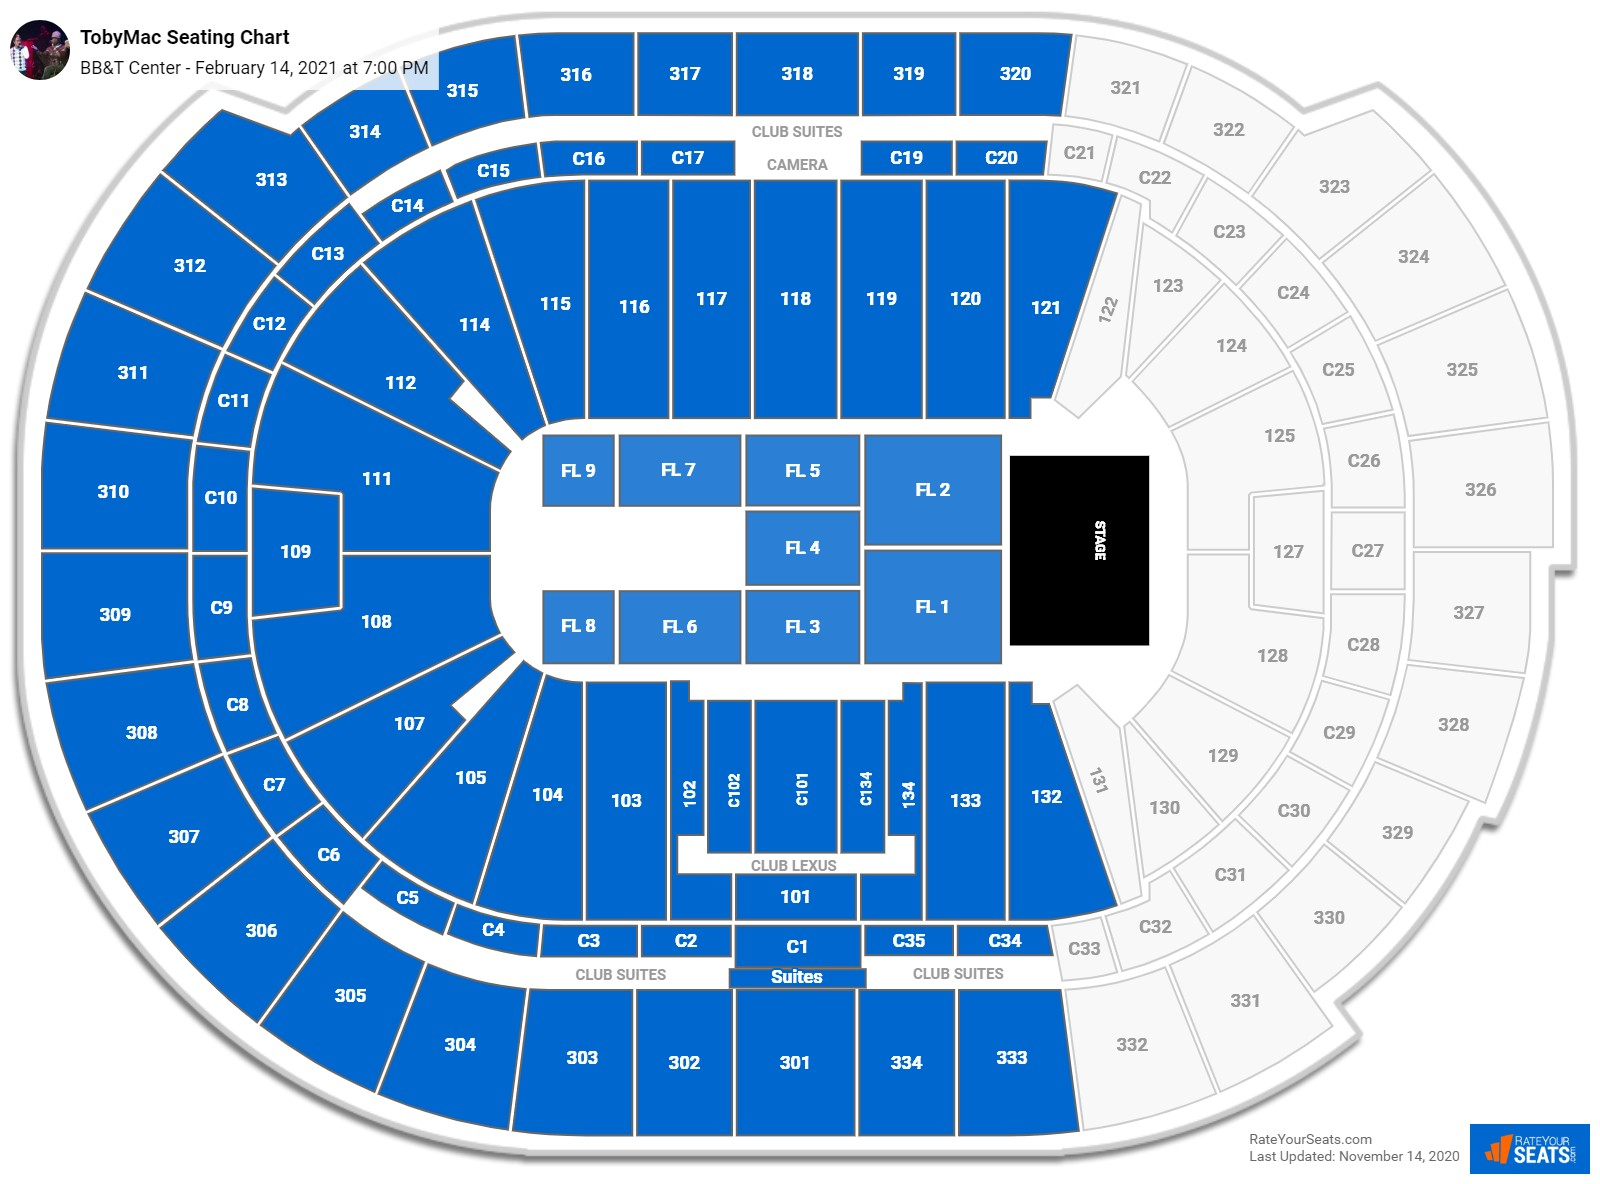 BB&T Center Seating Charts for Concerts - RateYourSeats.com